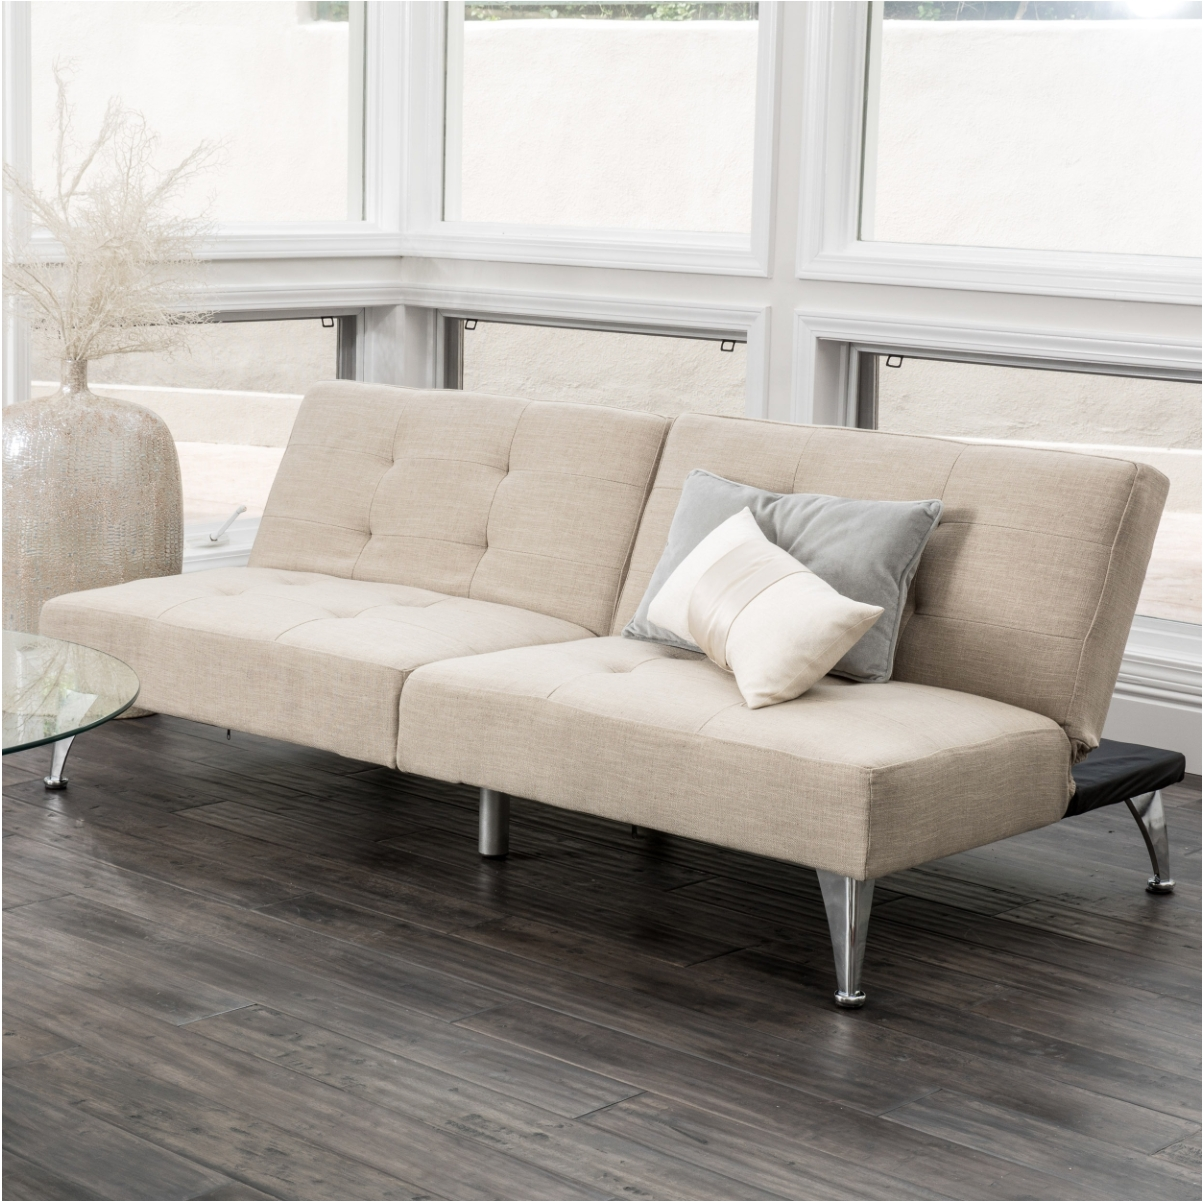 12 Affordable (And Chic) Sleeper Sofas For Small Living Spaces regarding Comfortable Convertible Sofas (Image 1 of 30)